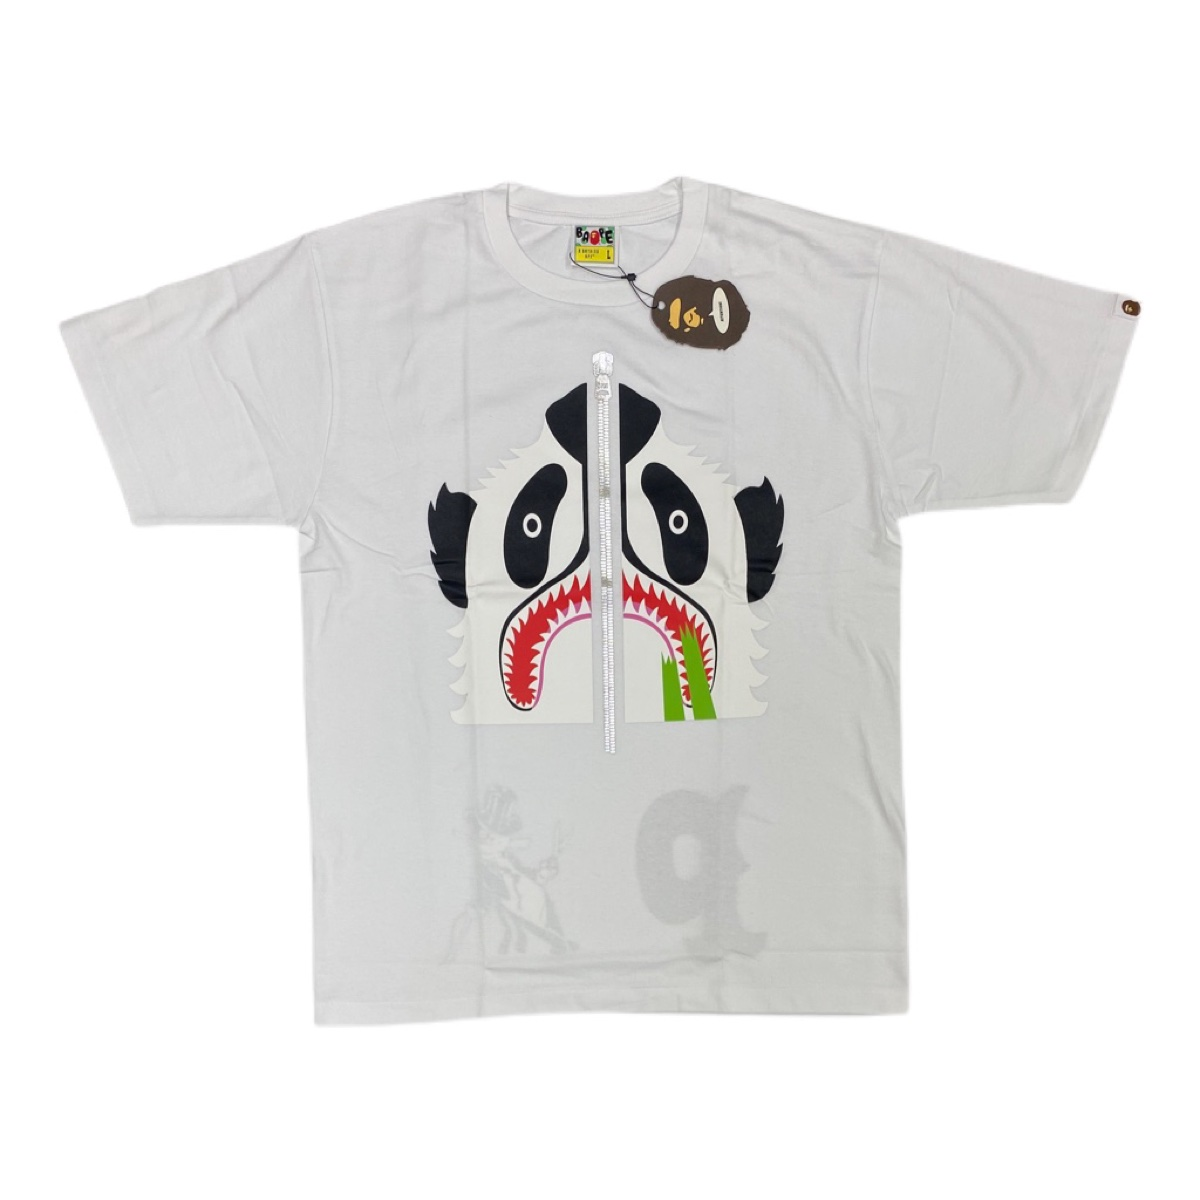 Authentic Bape panda white tee brand new with tags